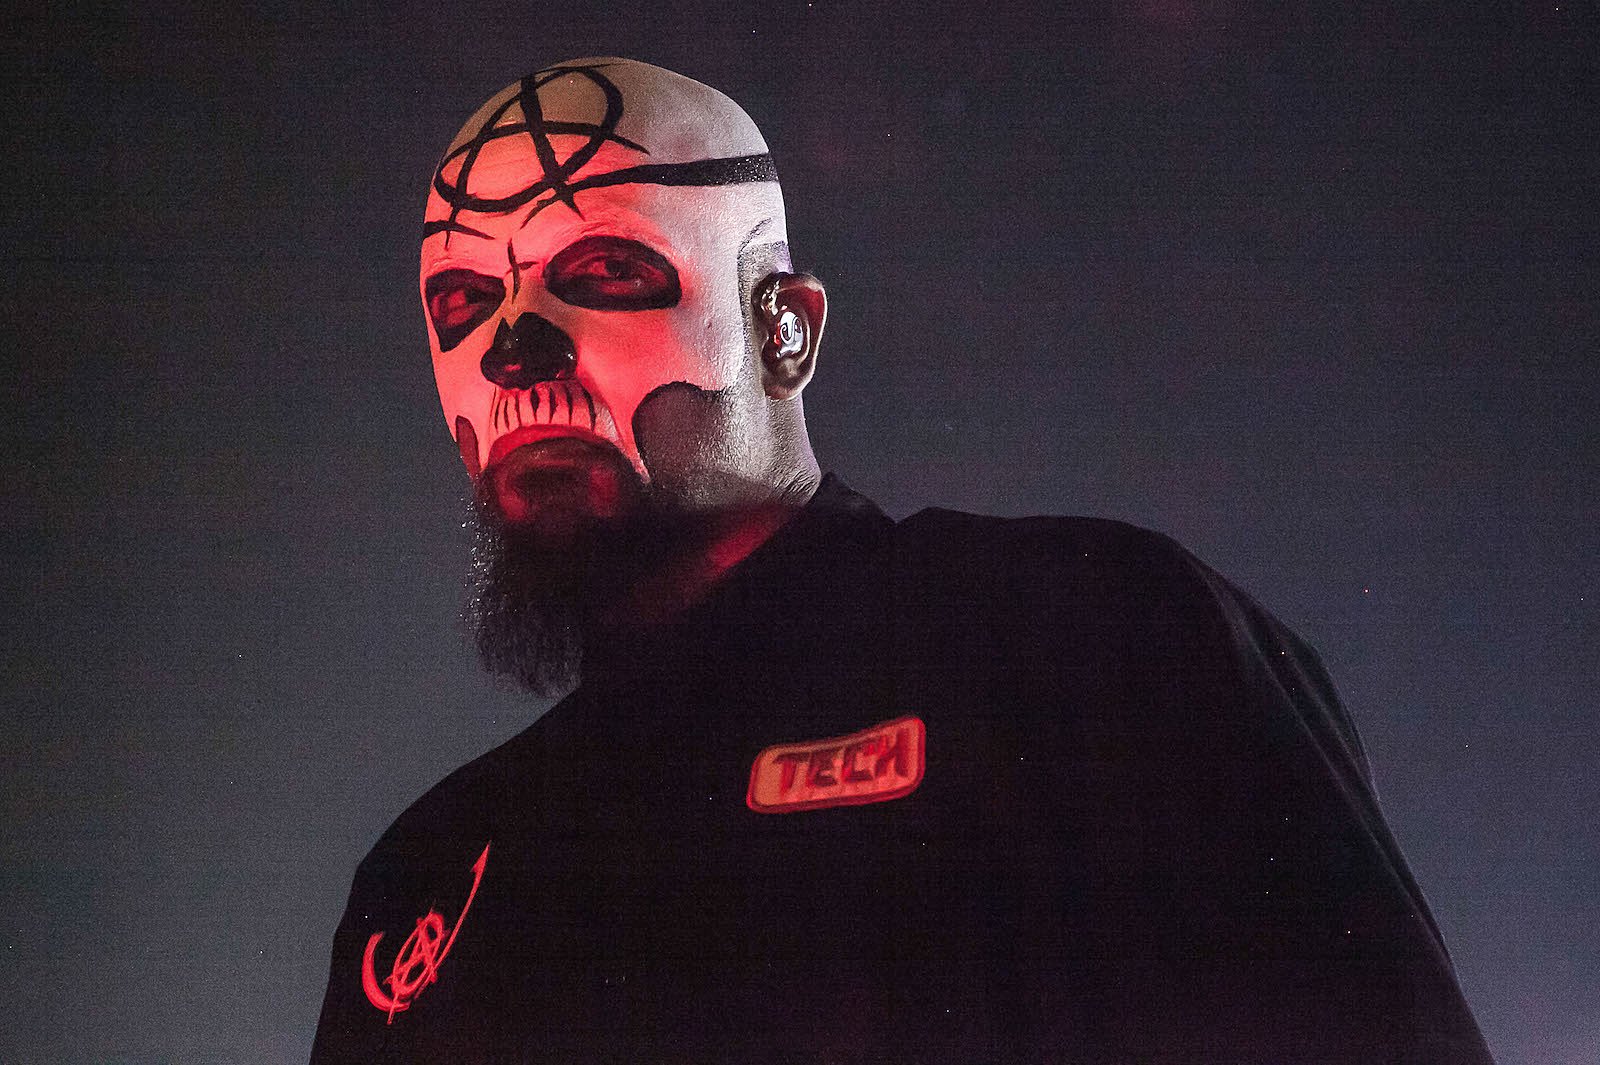 Tech N9ne and his Independent Powerhouse Tour Take Over Irving Plaza in NYC [PHOTOS] news